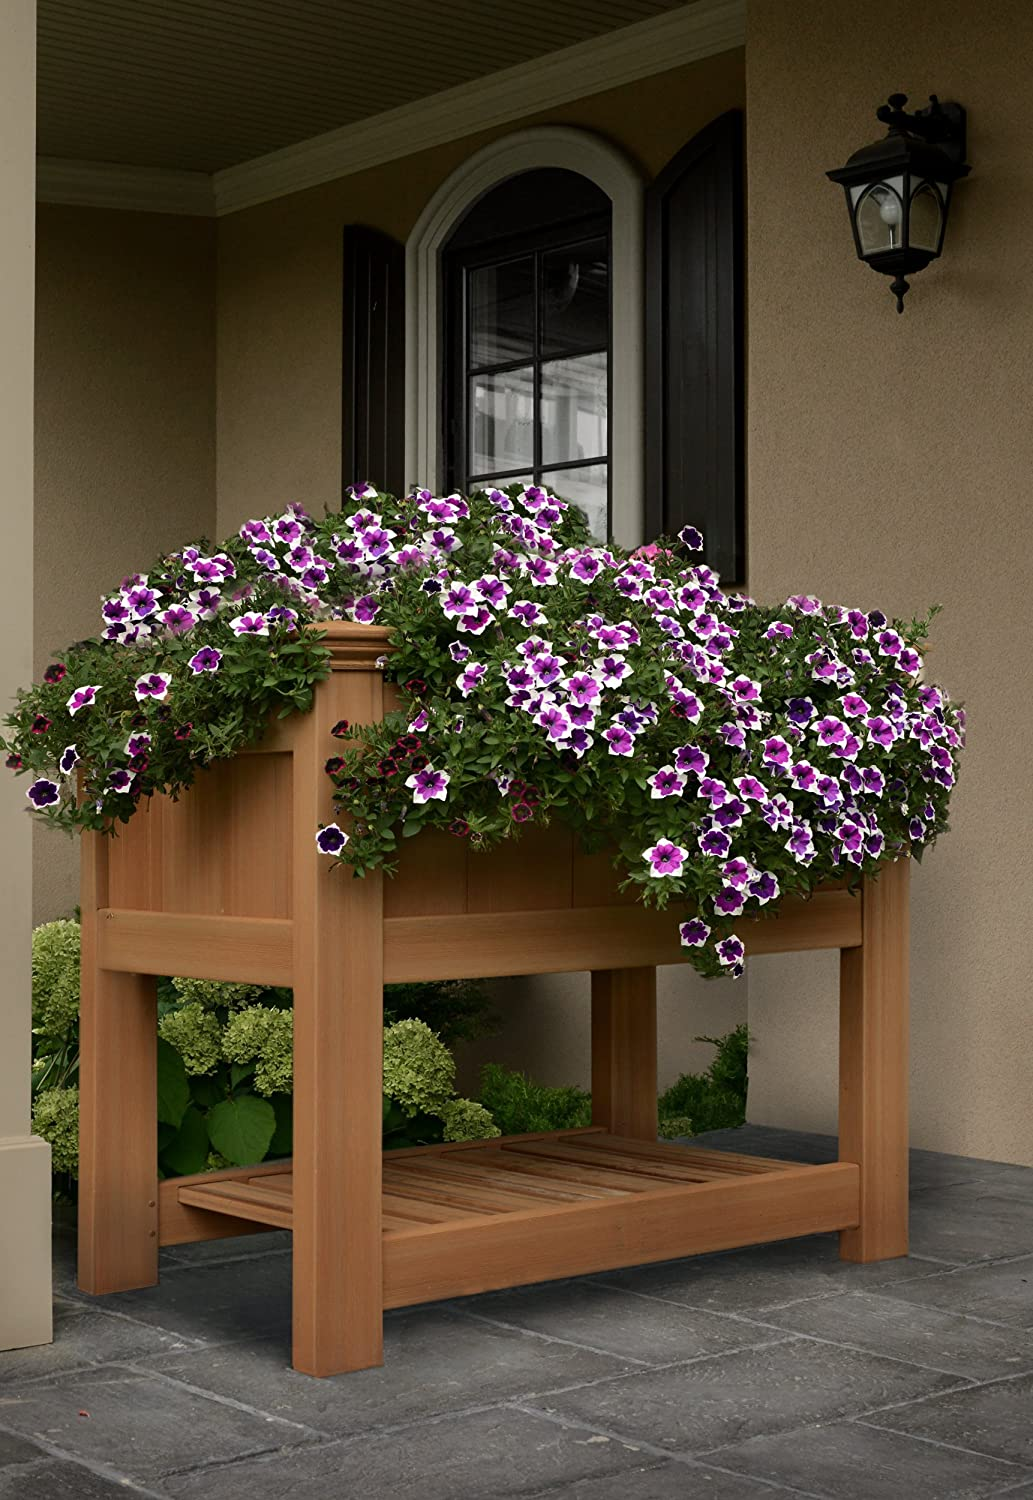 Bloomsbury 36 W x 24 L Composite Vinyl Raised Planter